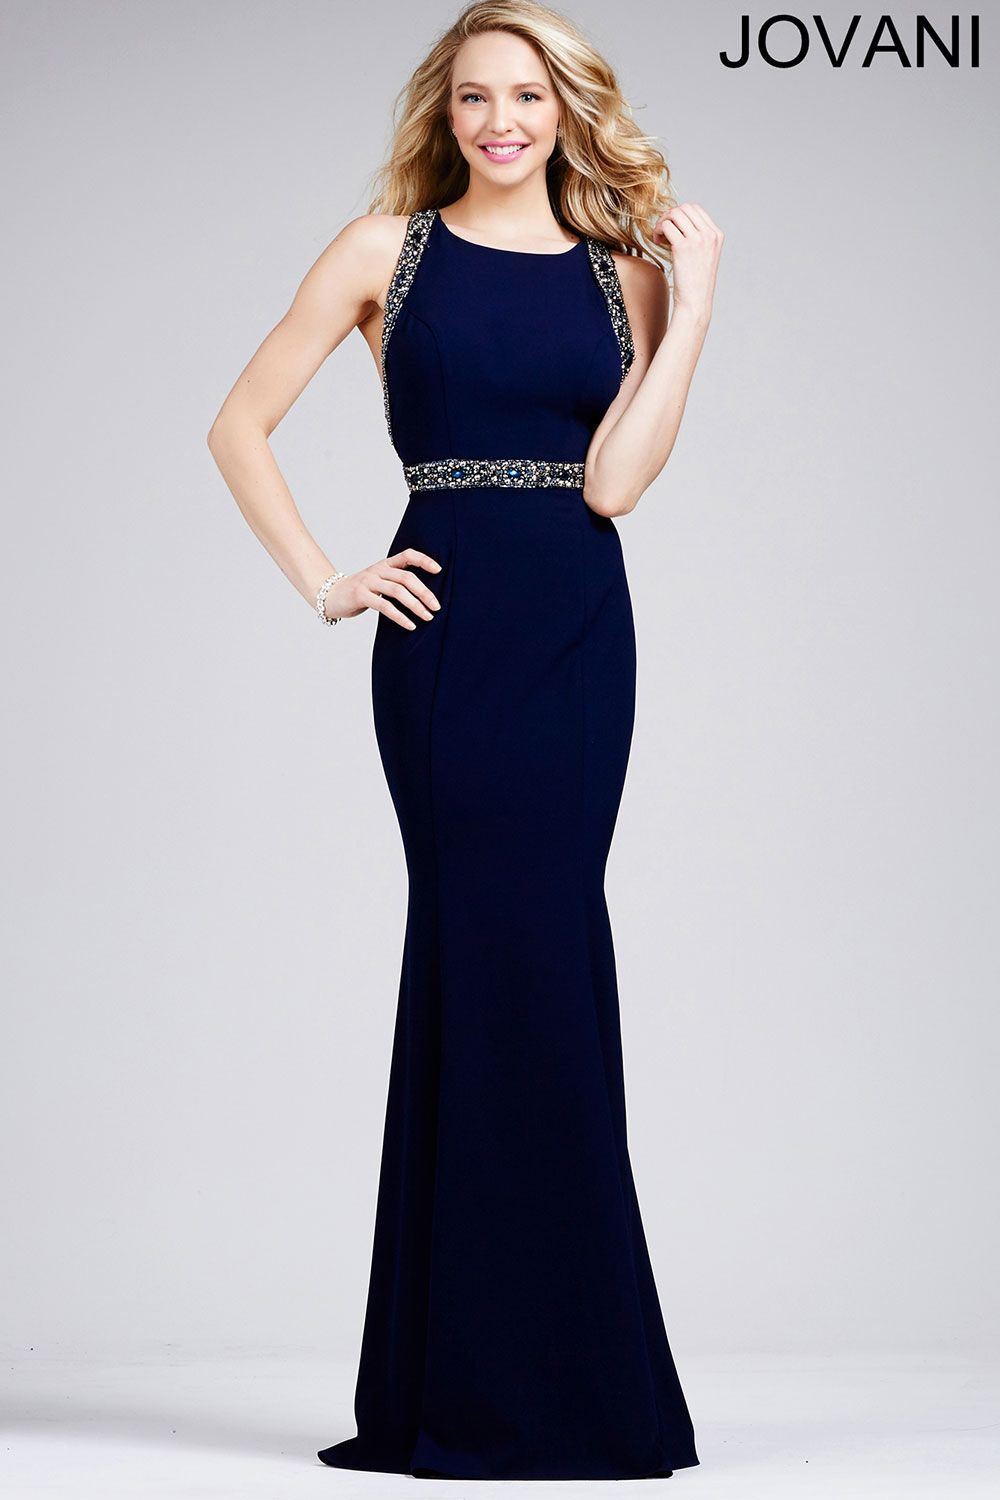 Fitted crepe prom dress pinterest pinterest prom crepes